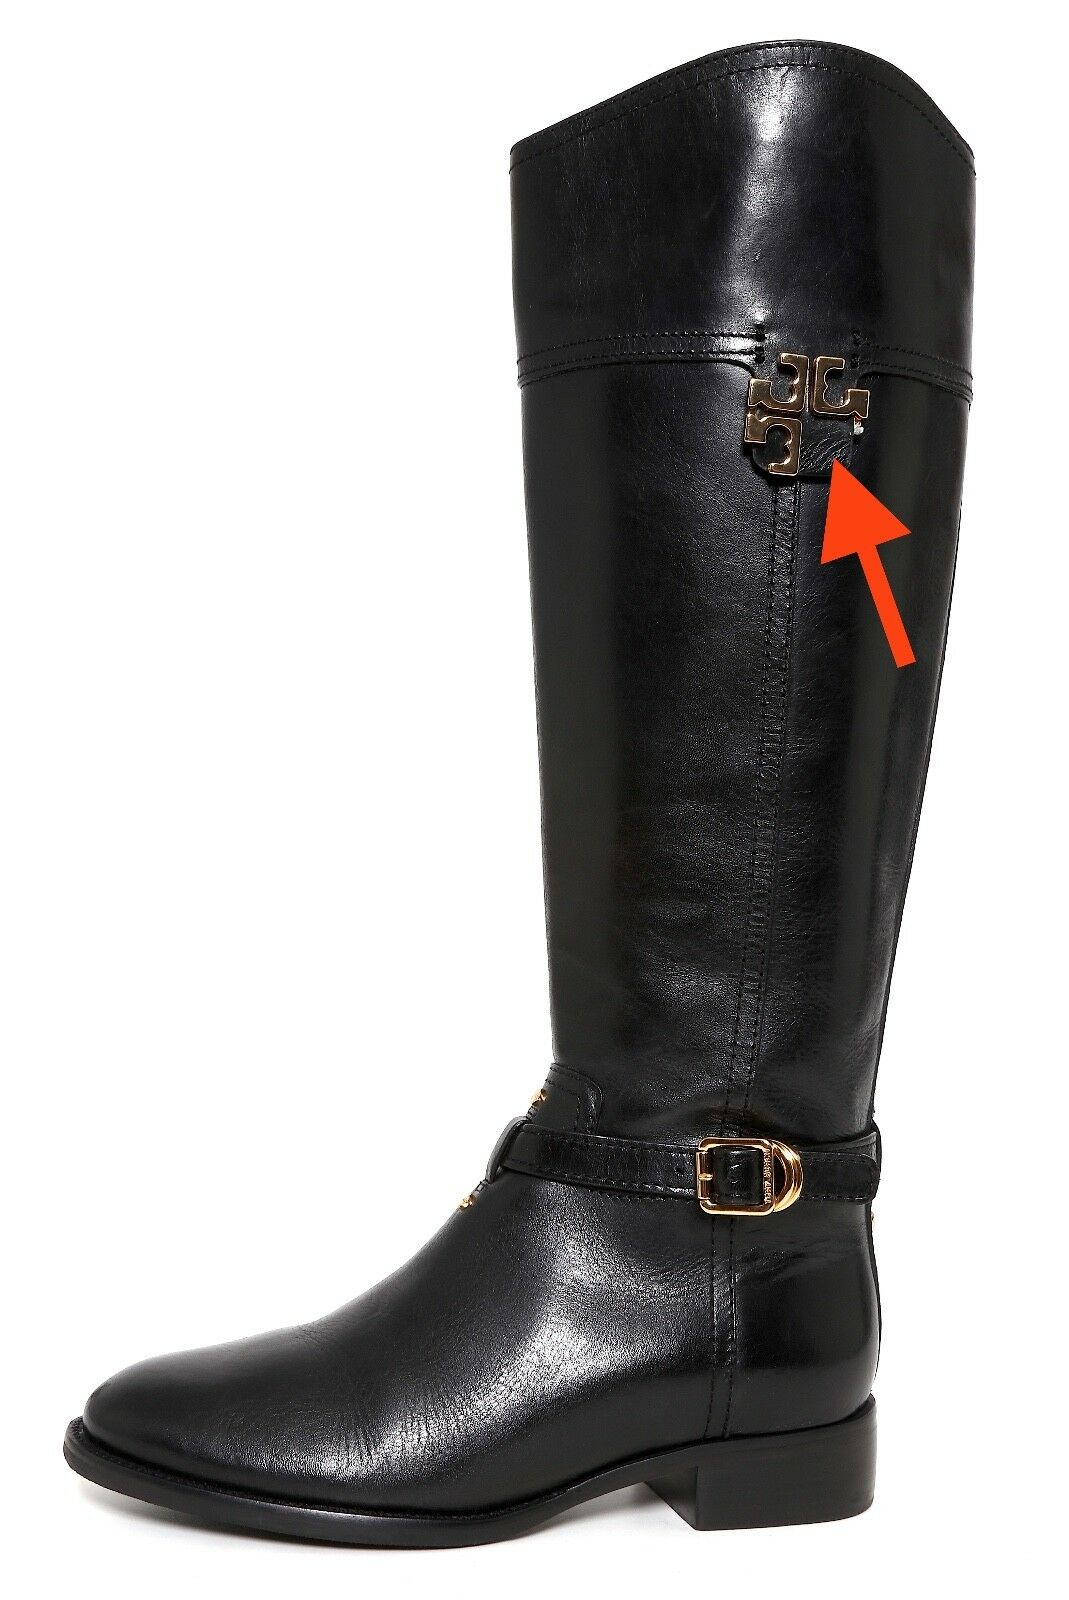 Tory Tory Tory Burch Eloise Leather Riding Boots Black Women Sz 6 M 1003 feb2ae